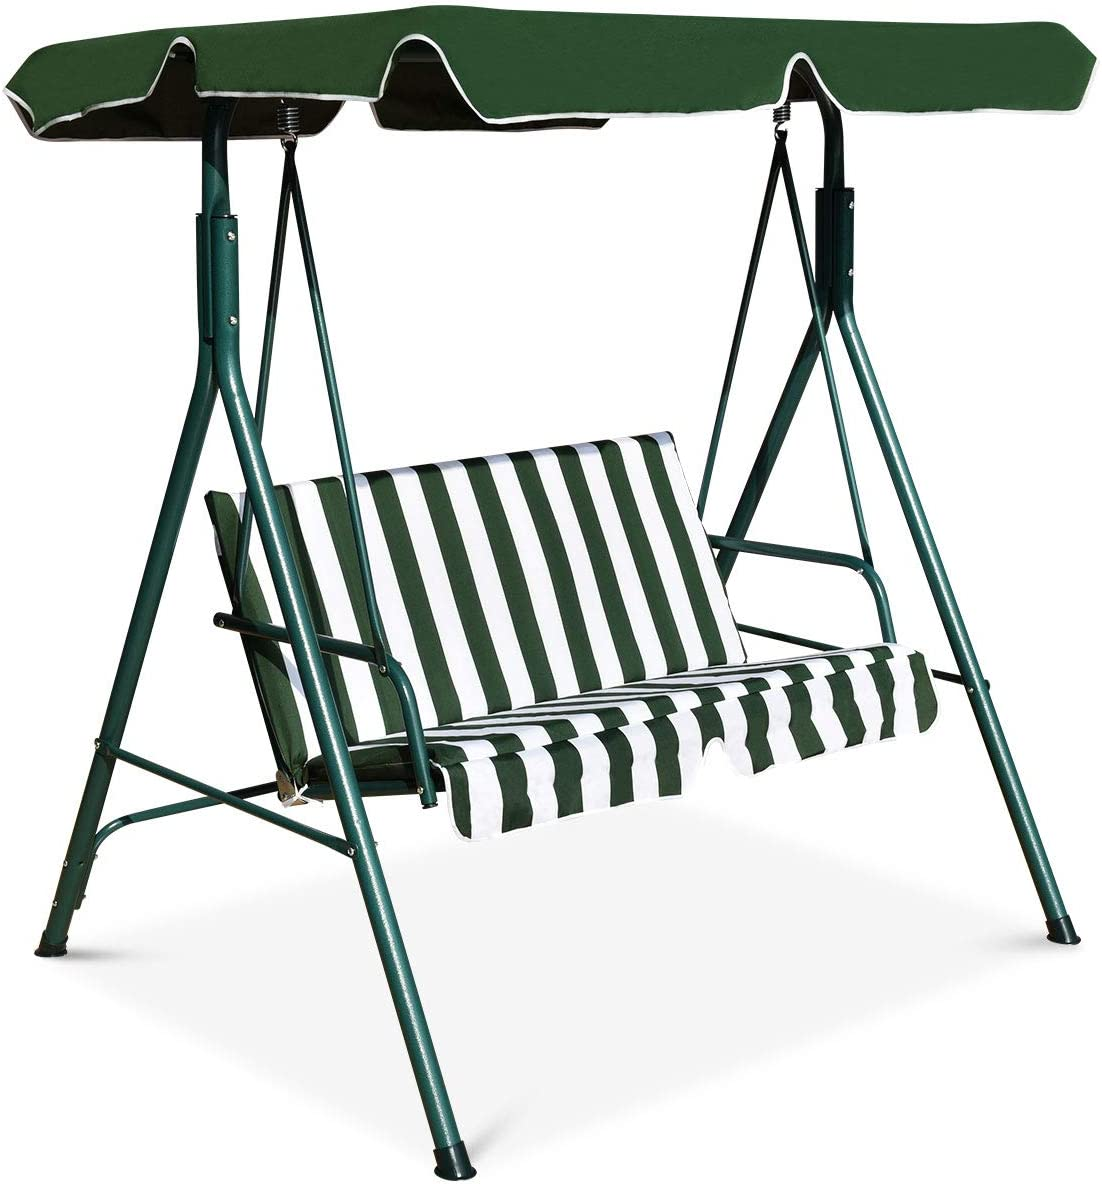 HAPPYGRILL 2-Person Convertible Canopy Swing Chair, Hammock Swing with Comfortable Cushion Seats, Weather Resistant Power Coated Steel Frame